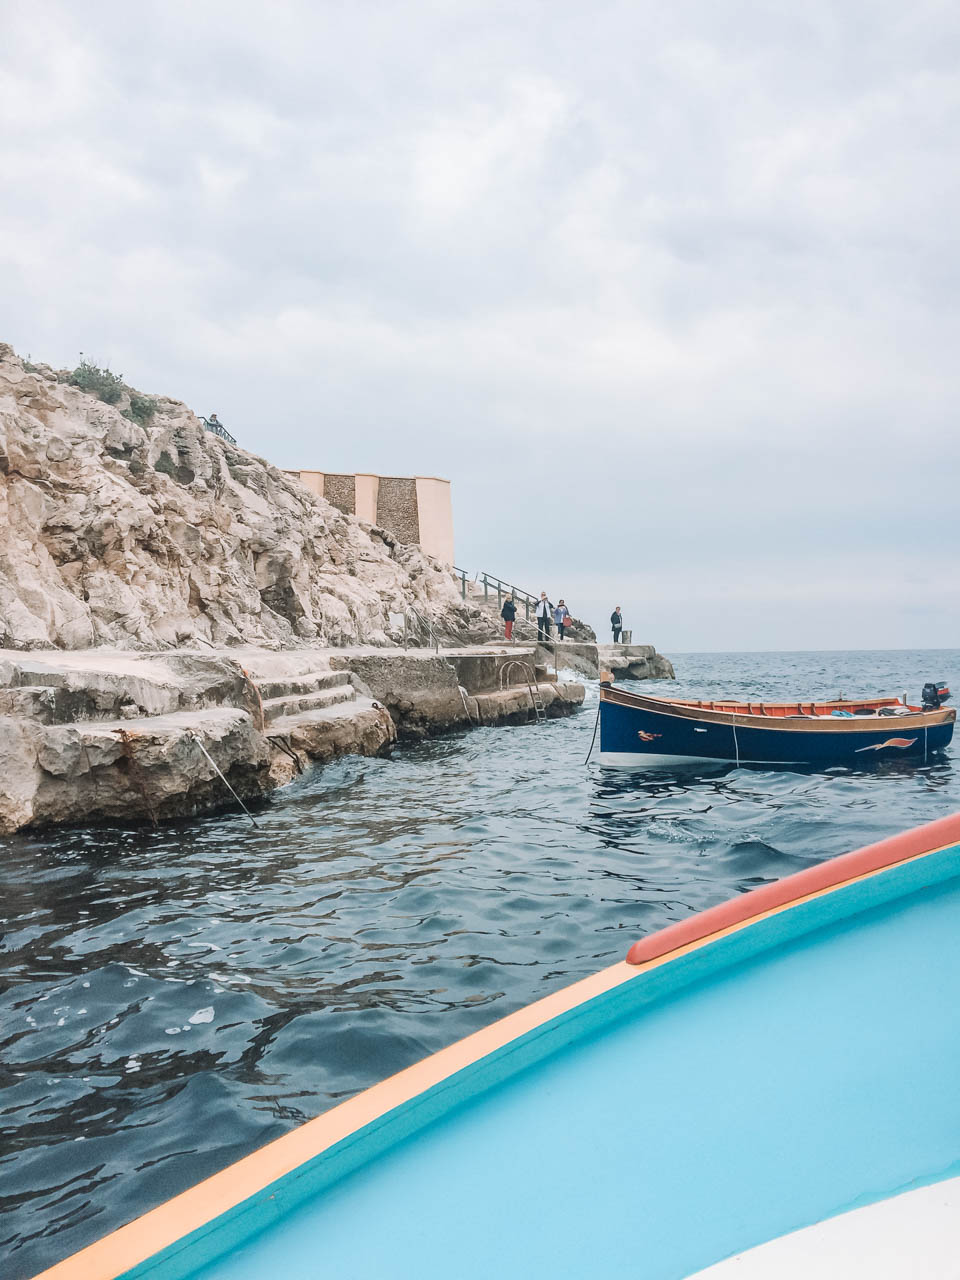 View of the Blue Grotto in Malta from a fisherman's boat